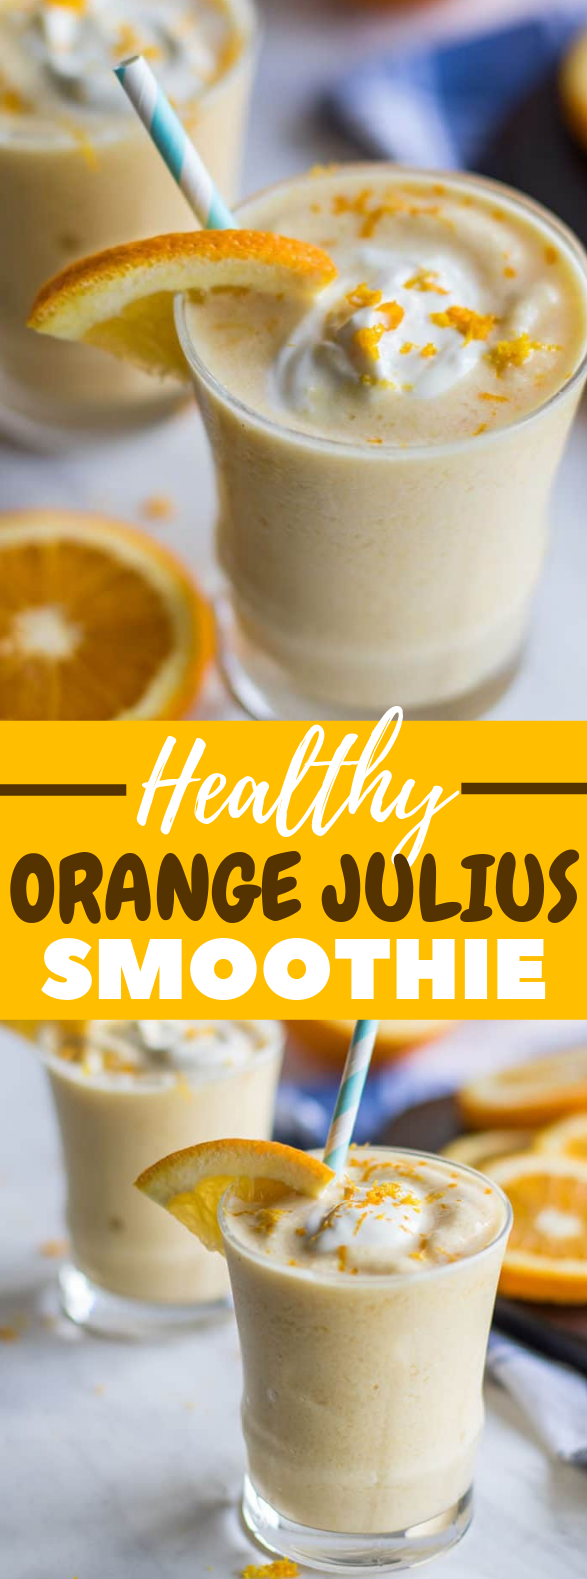 Healthy Orange Julius Smoothie #drink #healthydrink